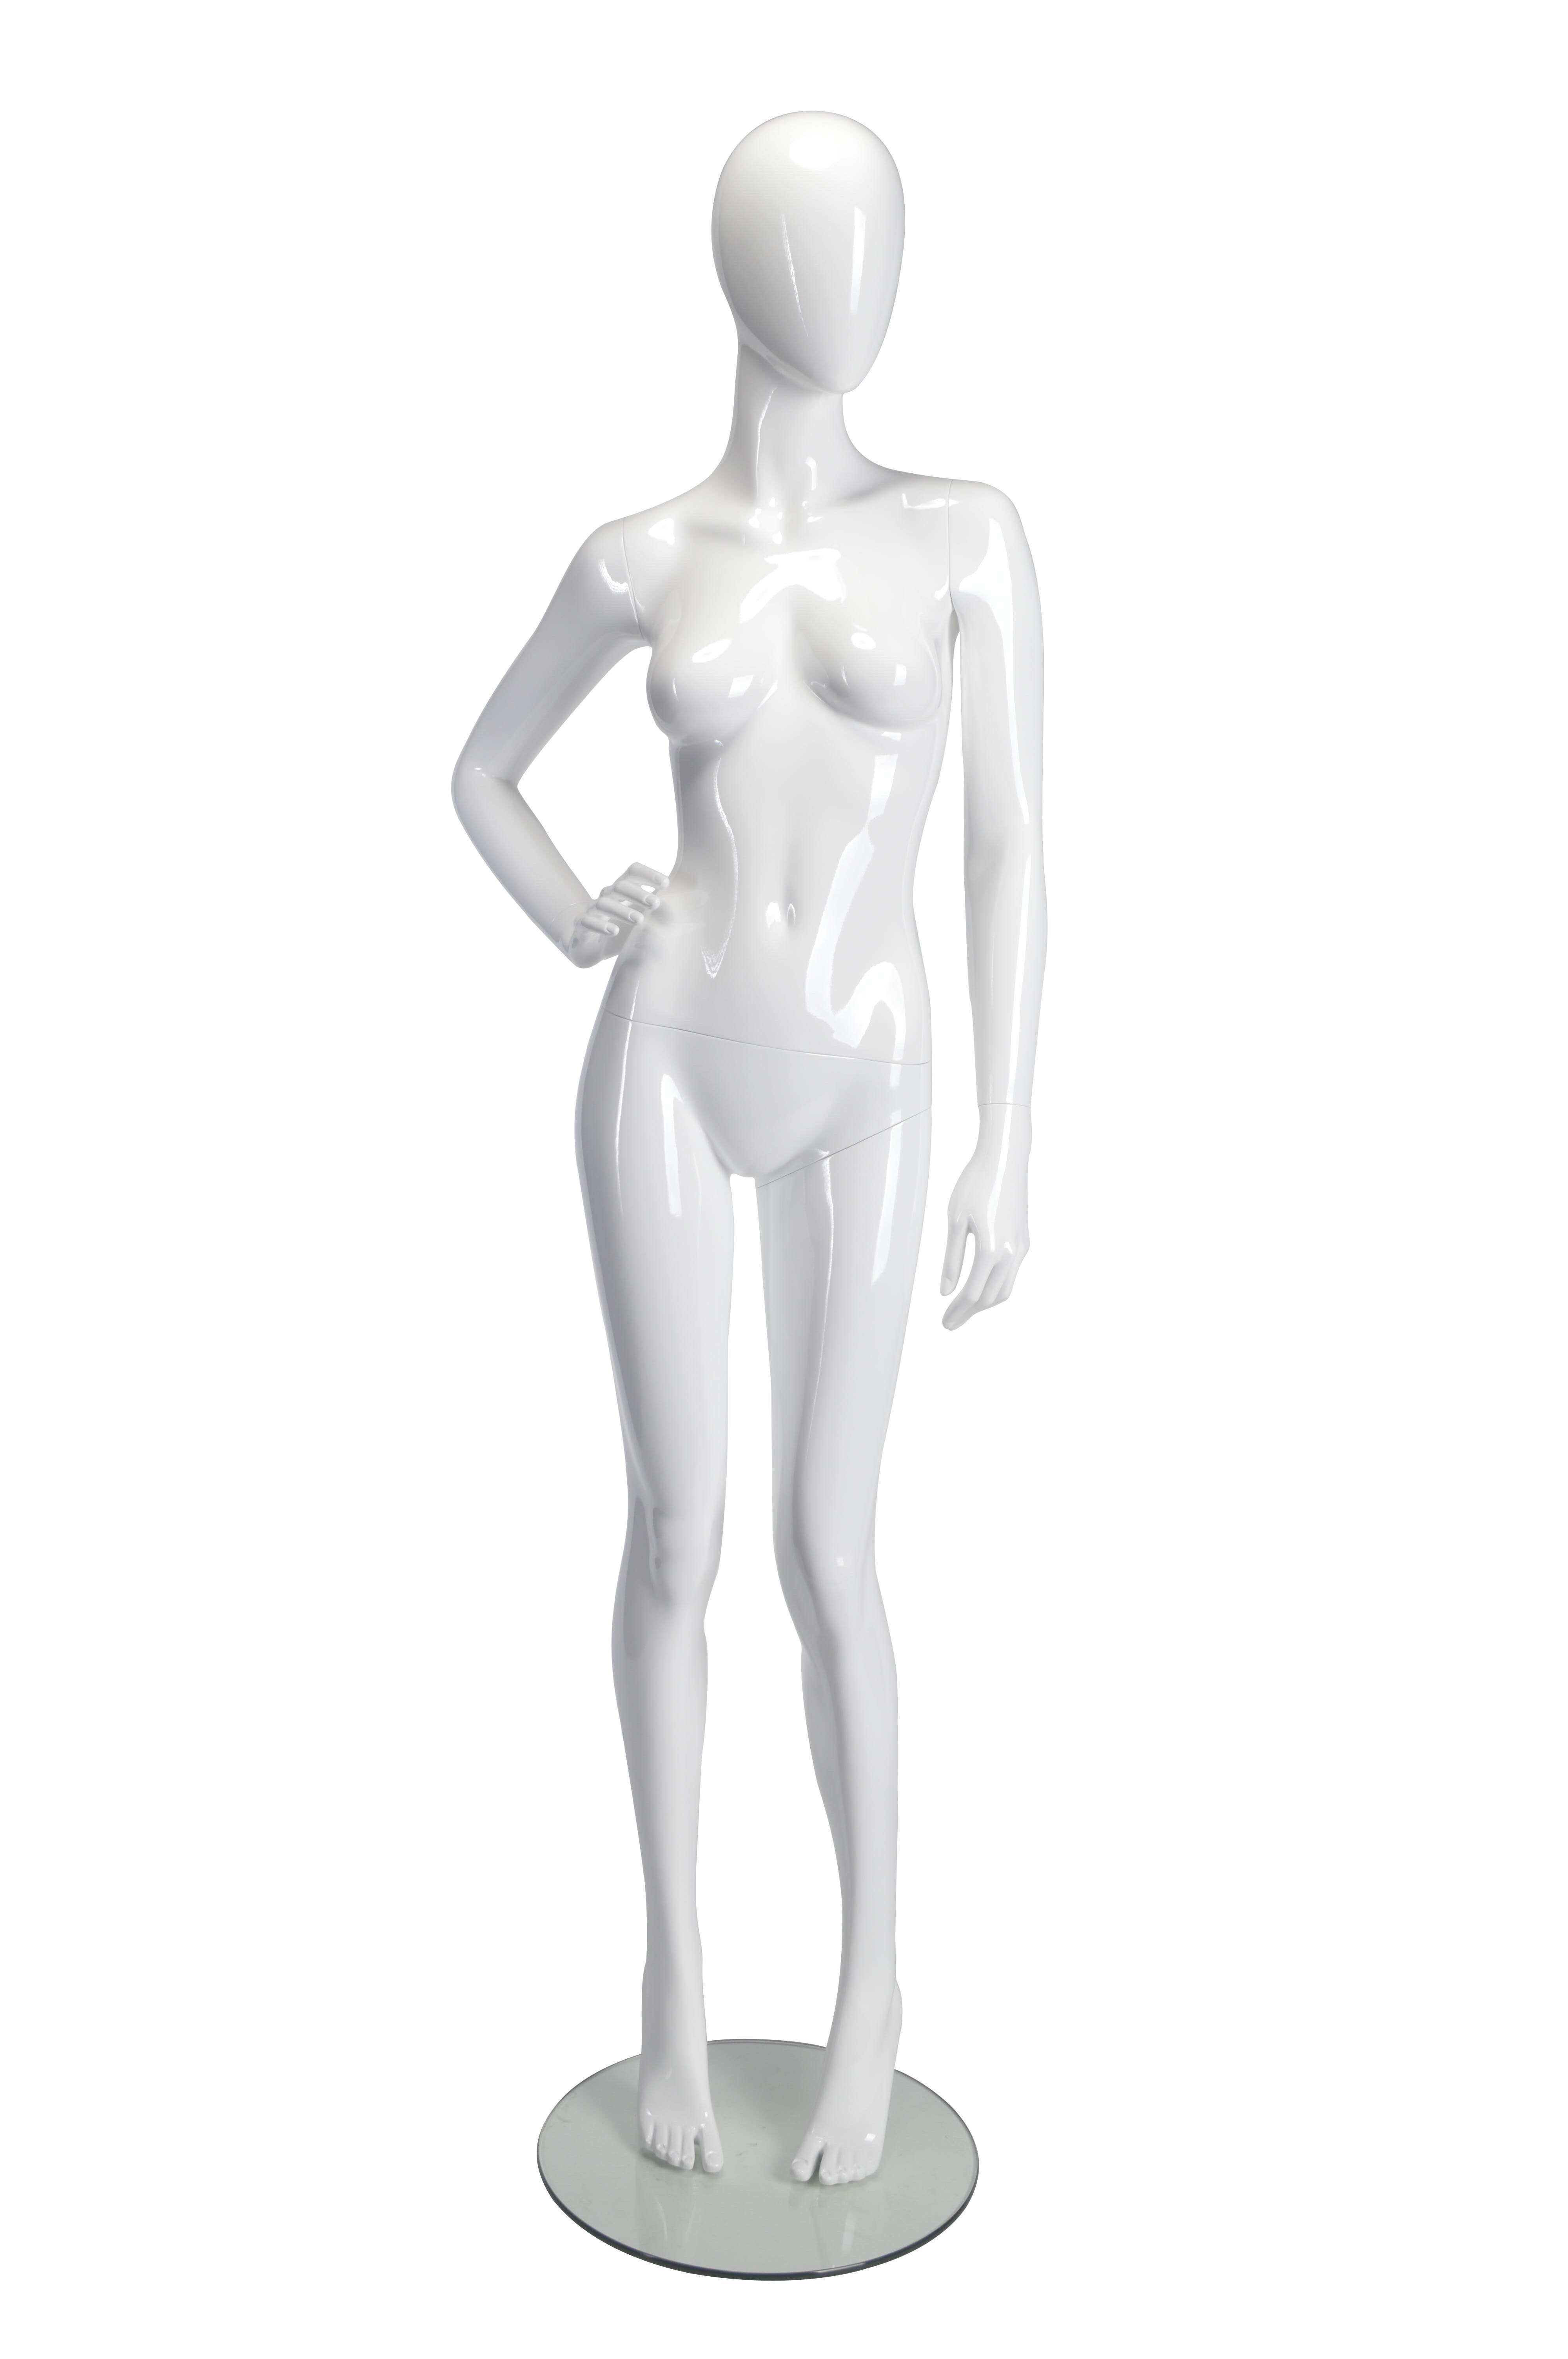 HBO-ABI53 - Female Mannequin Hand on right hip - White Glossy